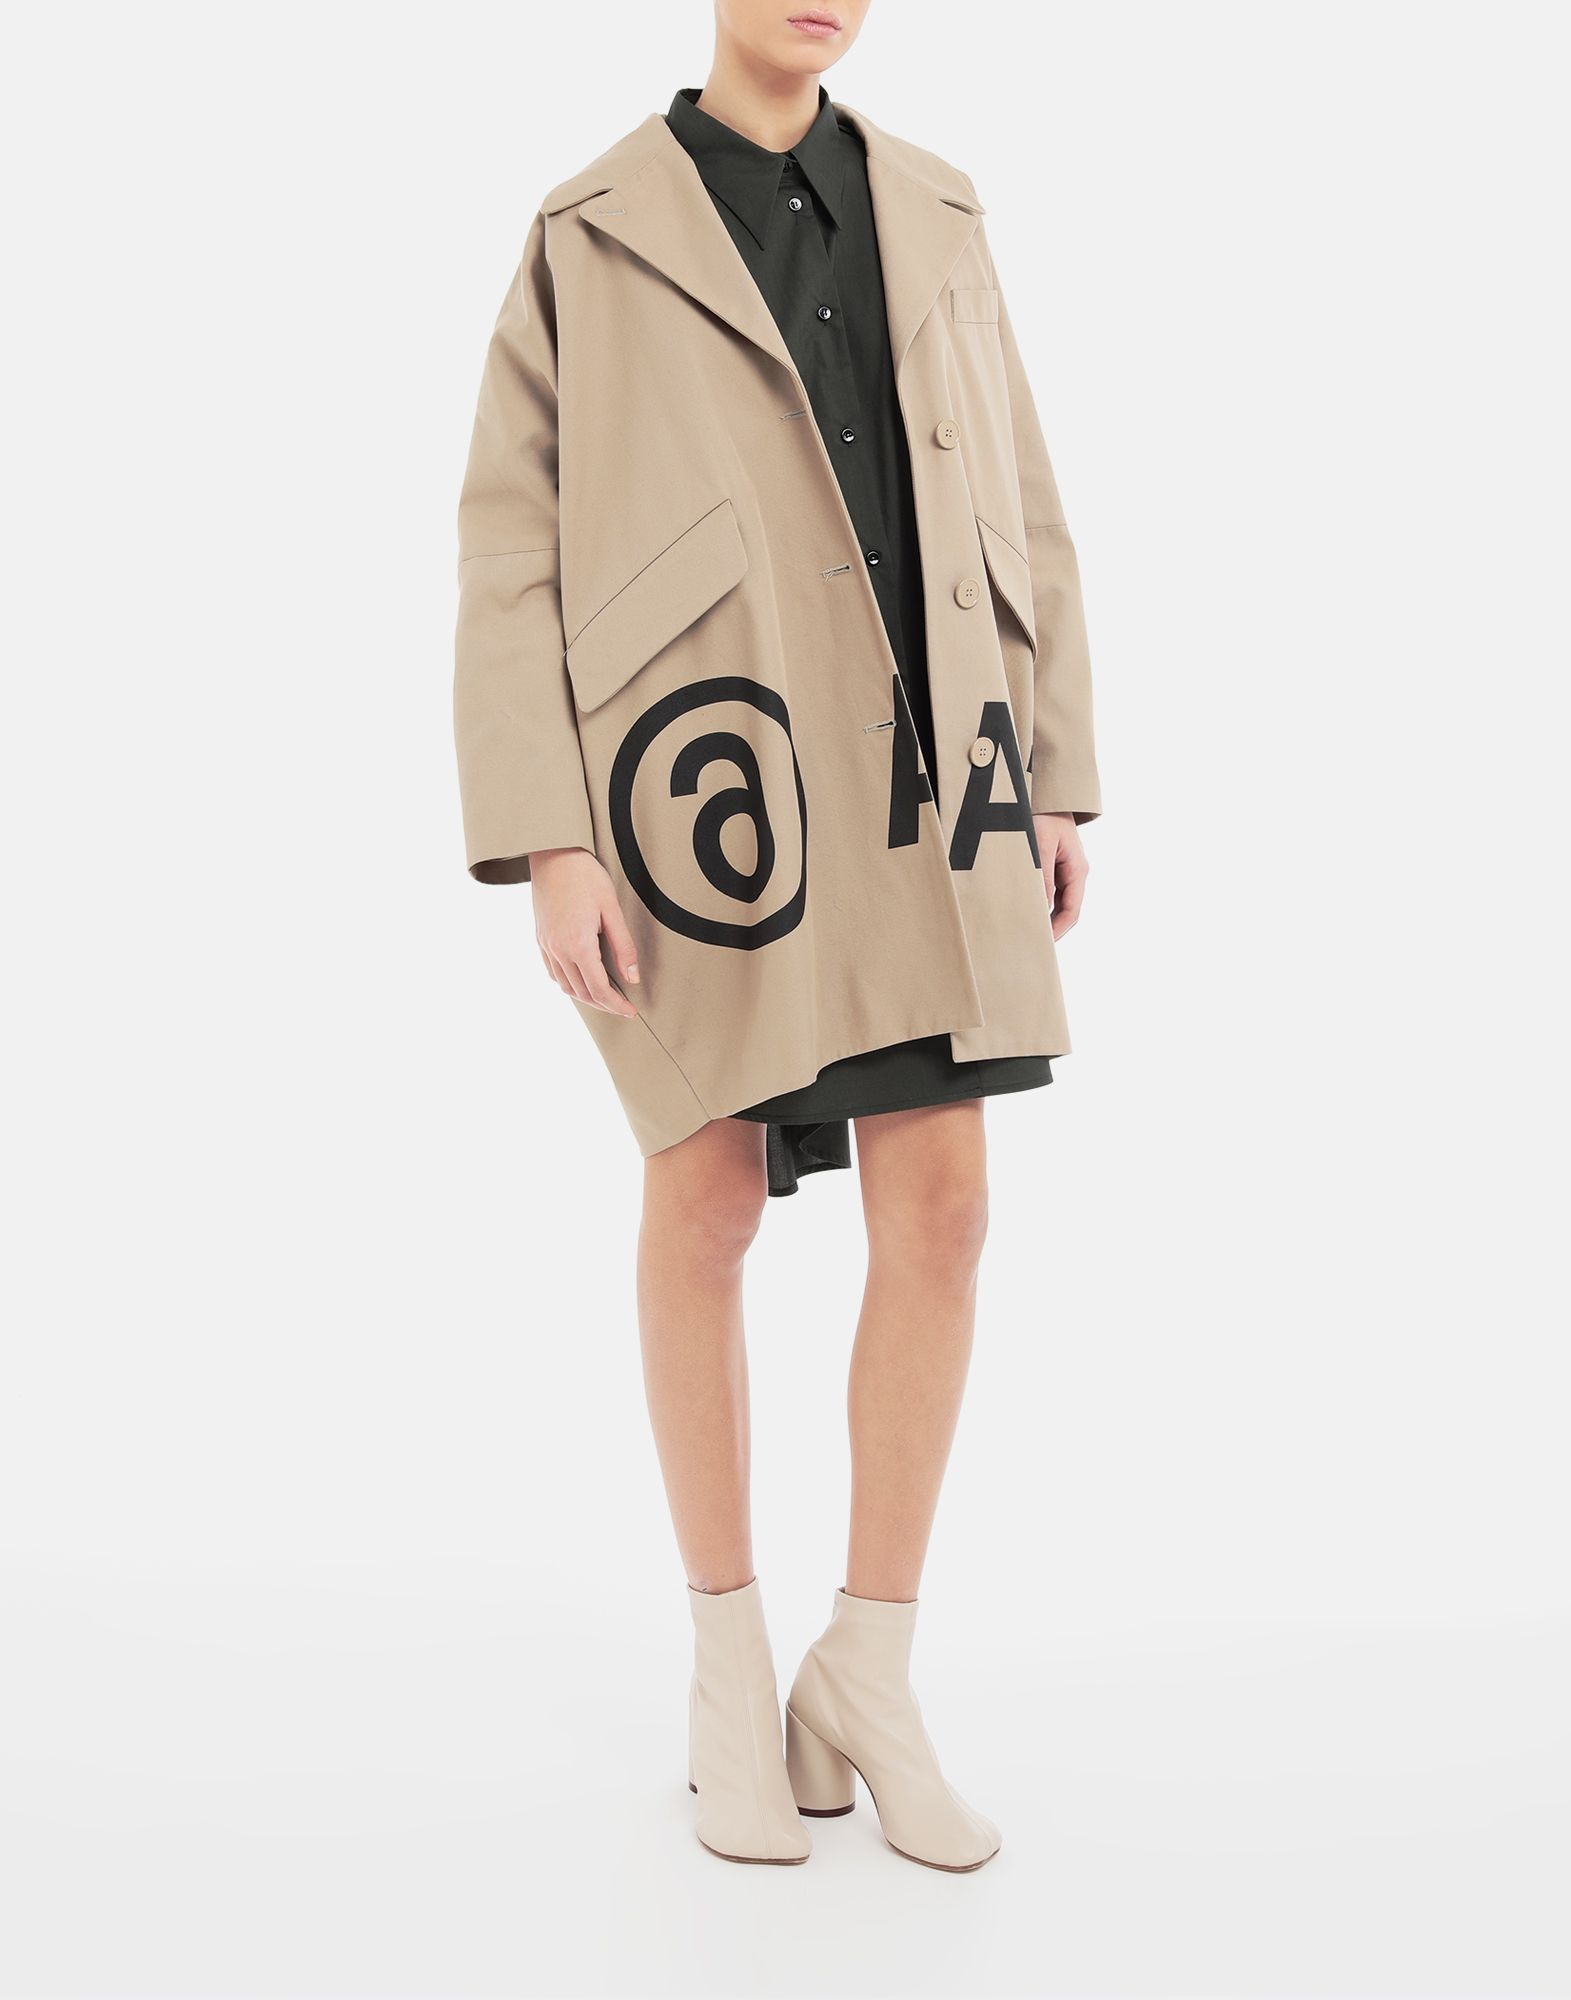 MM6 MAISON MARGIELA Oversized shirt-dress Dress Woman d